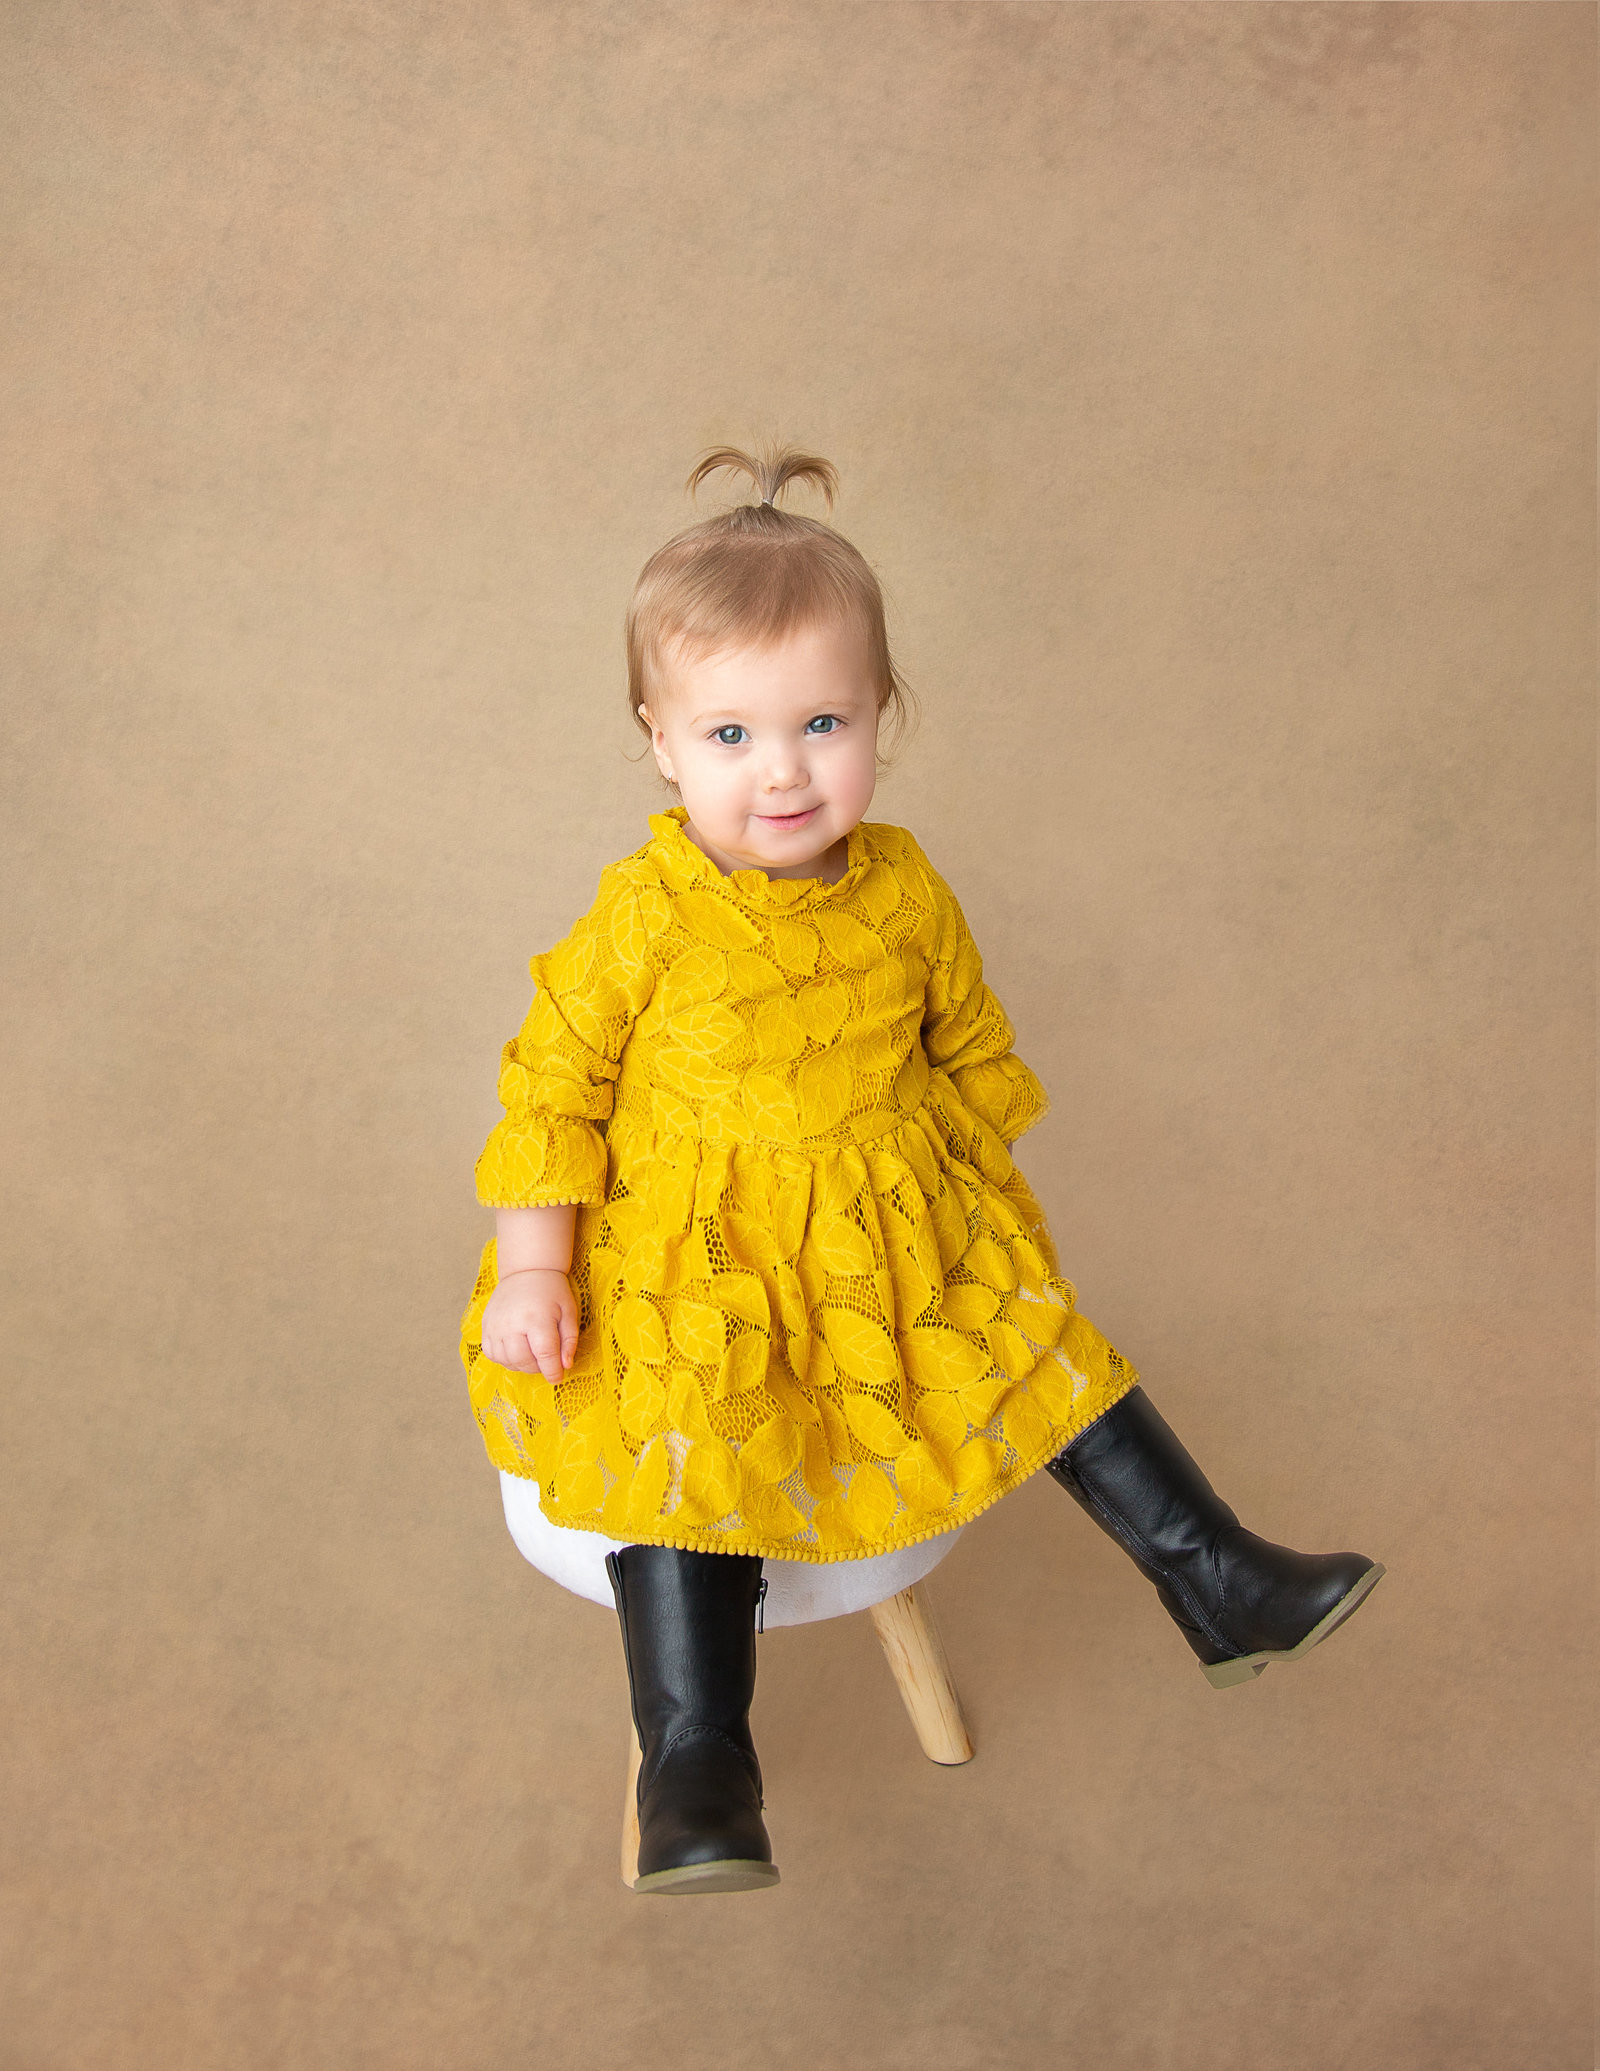 In studio milestone session - one year old, sitting on a small chair, wearing black boots and a gold dress